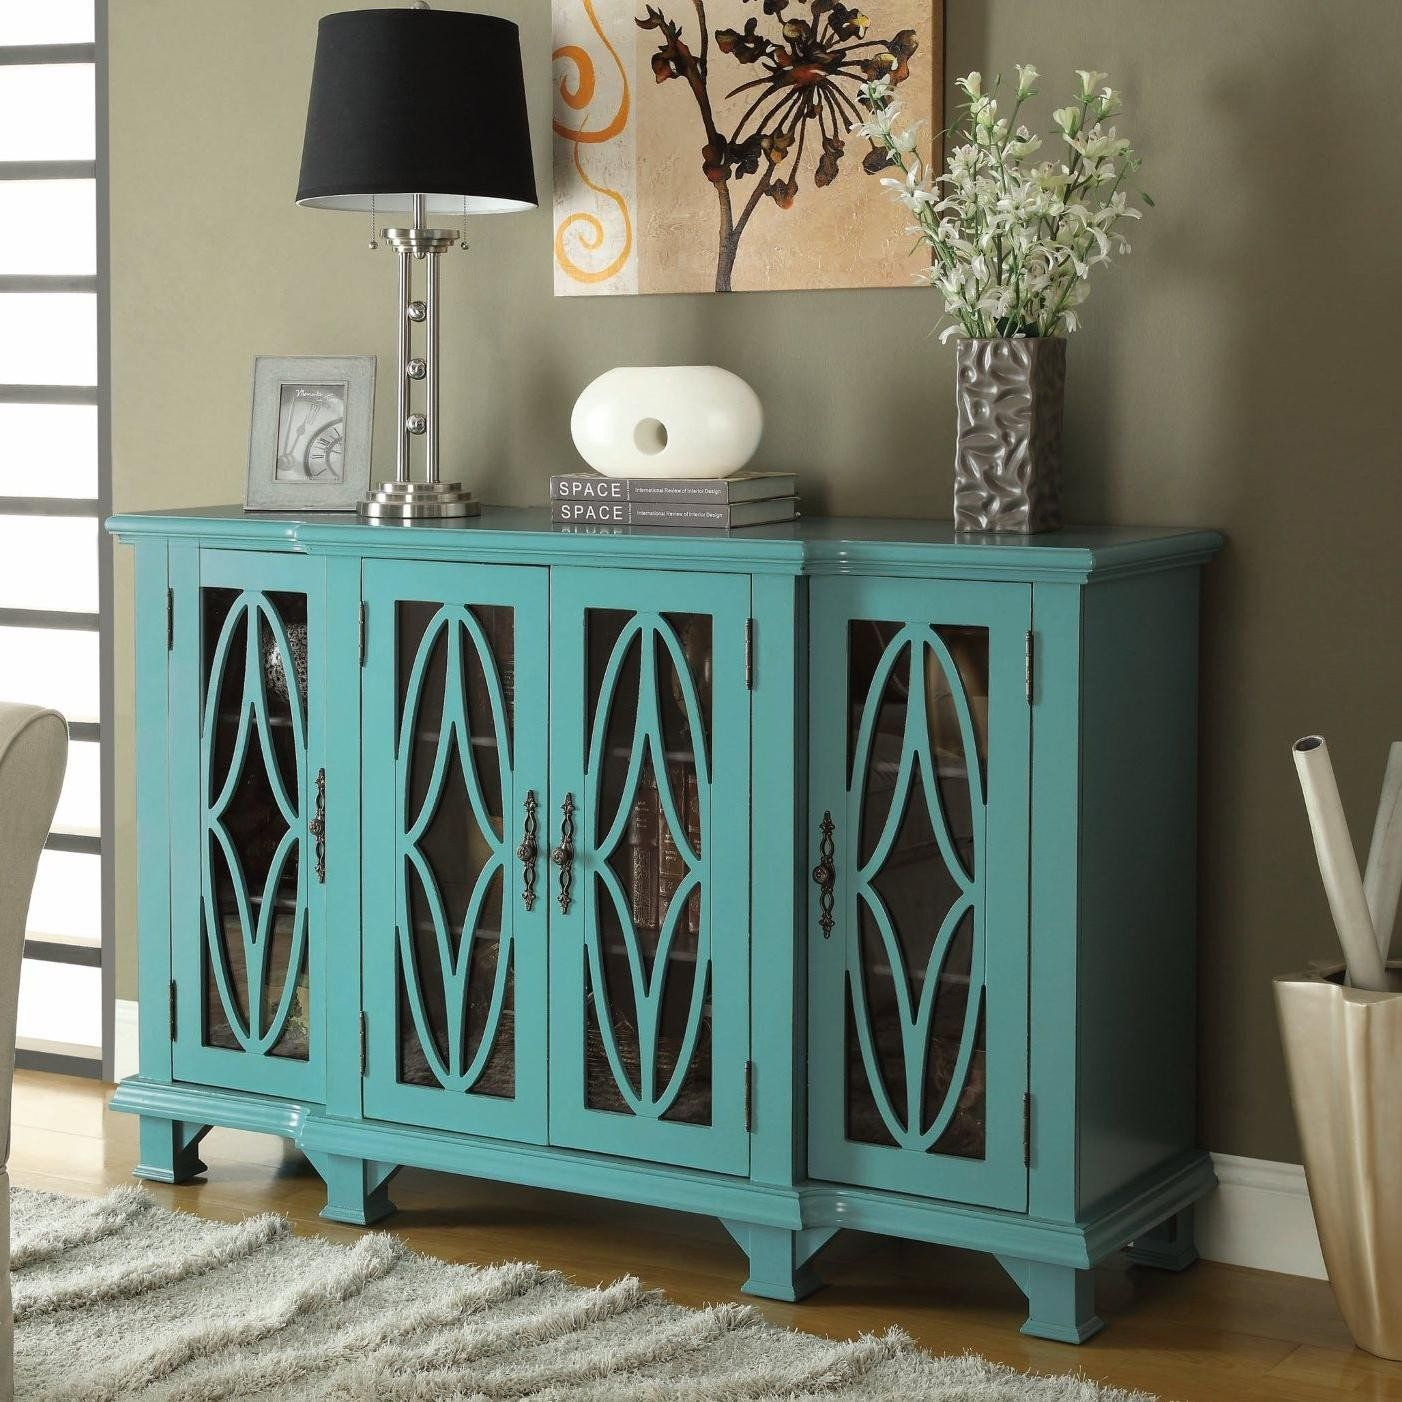 Apotime Modern Console Cabinet Turquoise/white In 2019 | For With Regard To Mauldin 3 Door Sideboards (View 22 of 30)